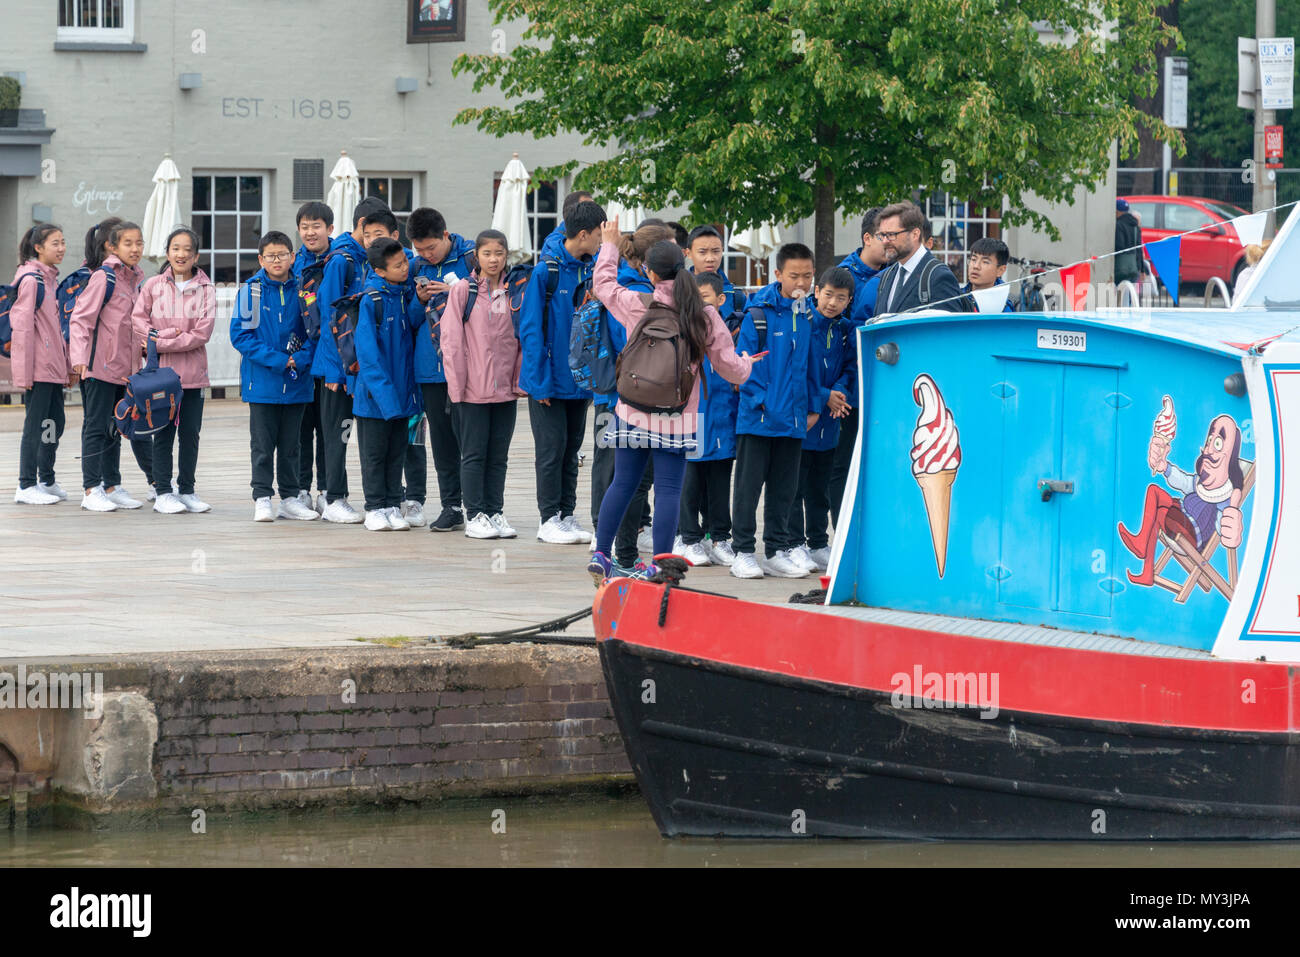 line of Chinese school kids waiting to buy ice cream in the UK - Stock Image